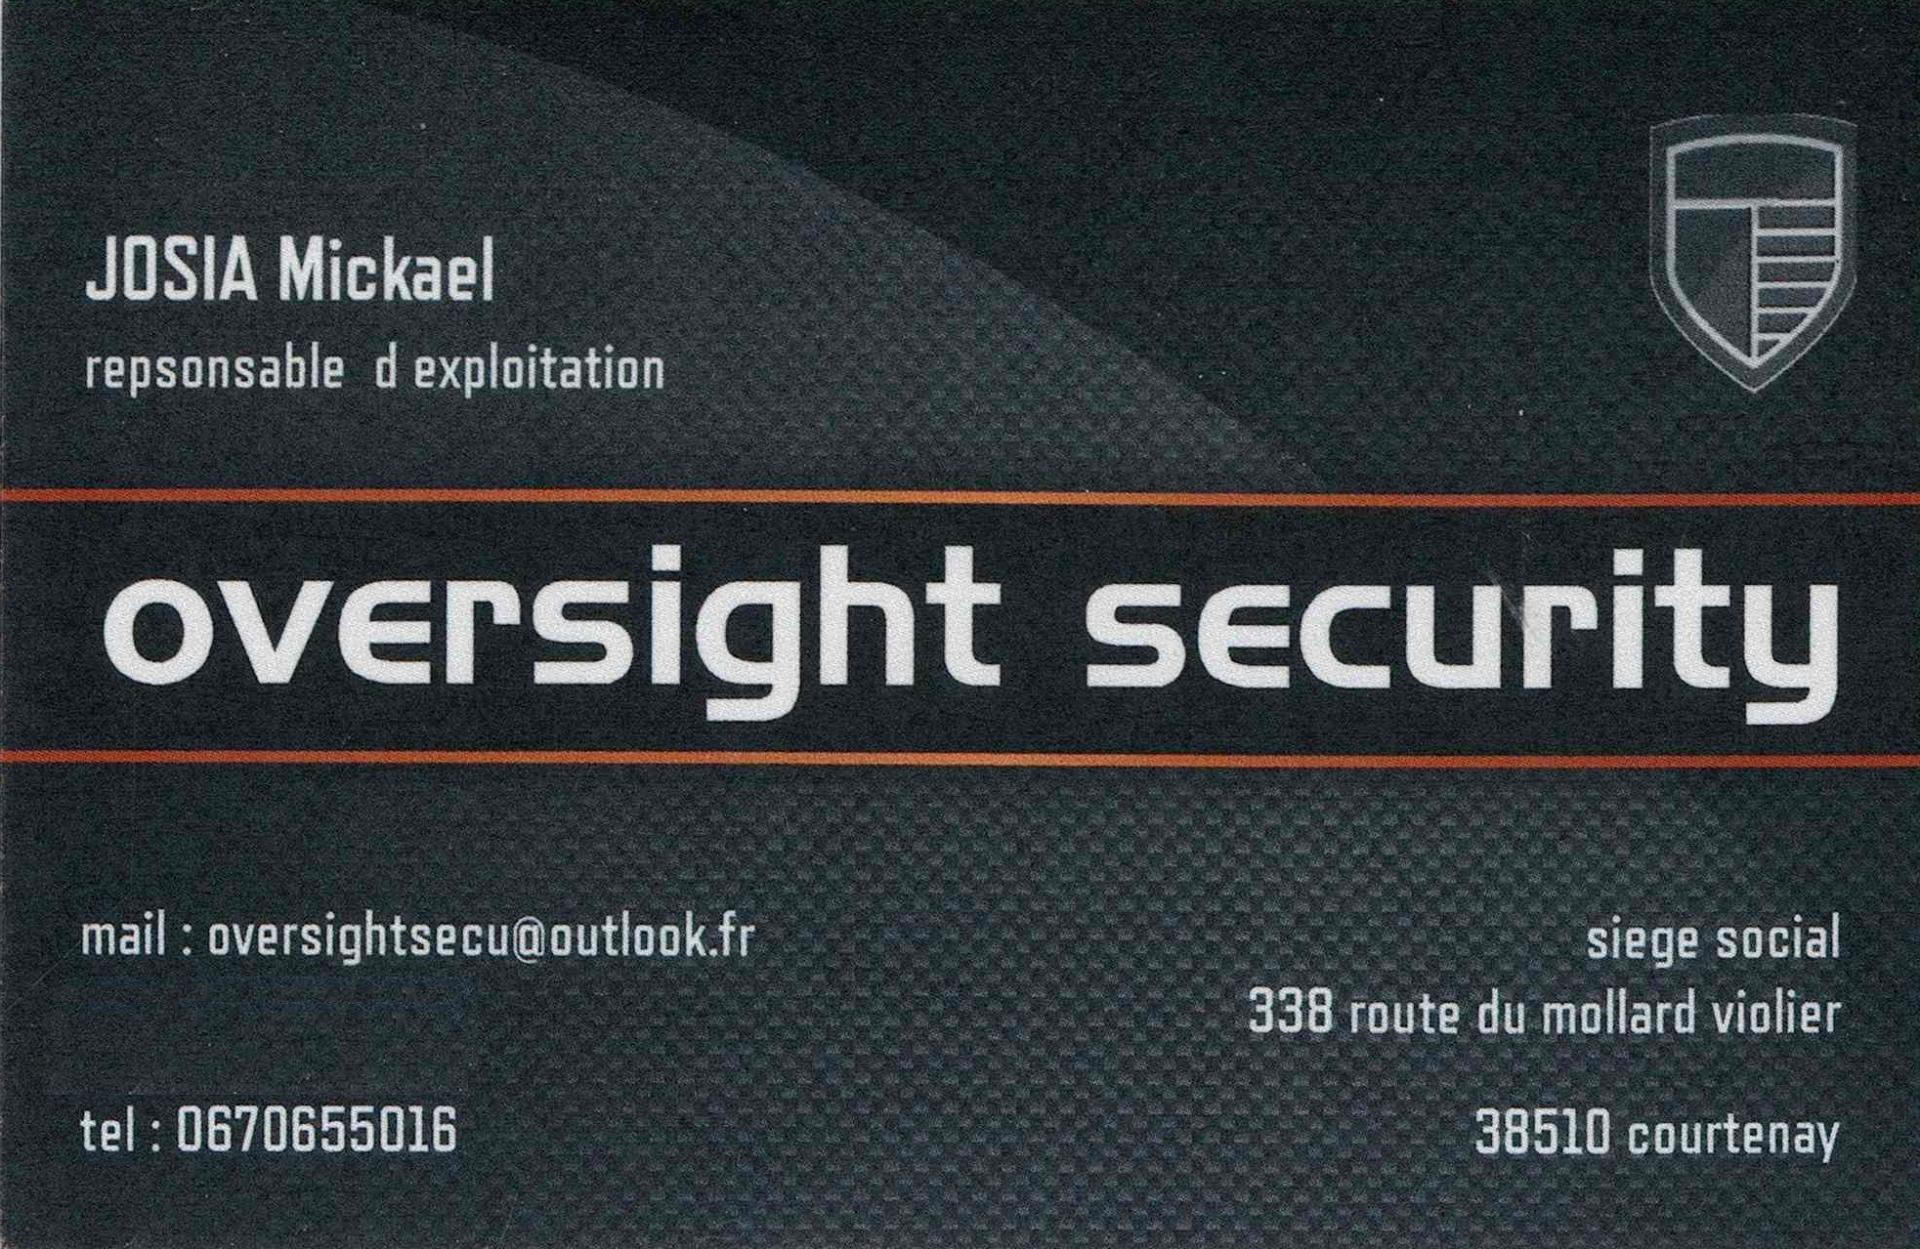 Oversight security